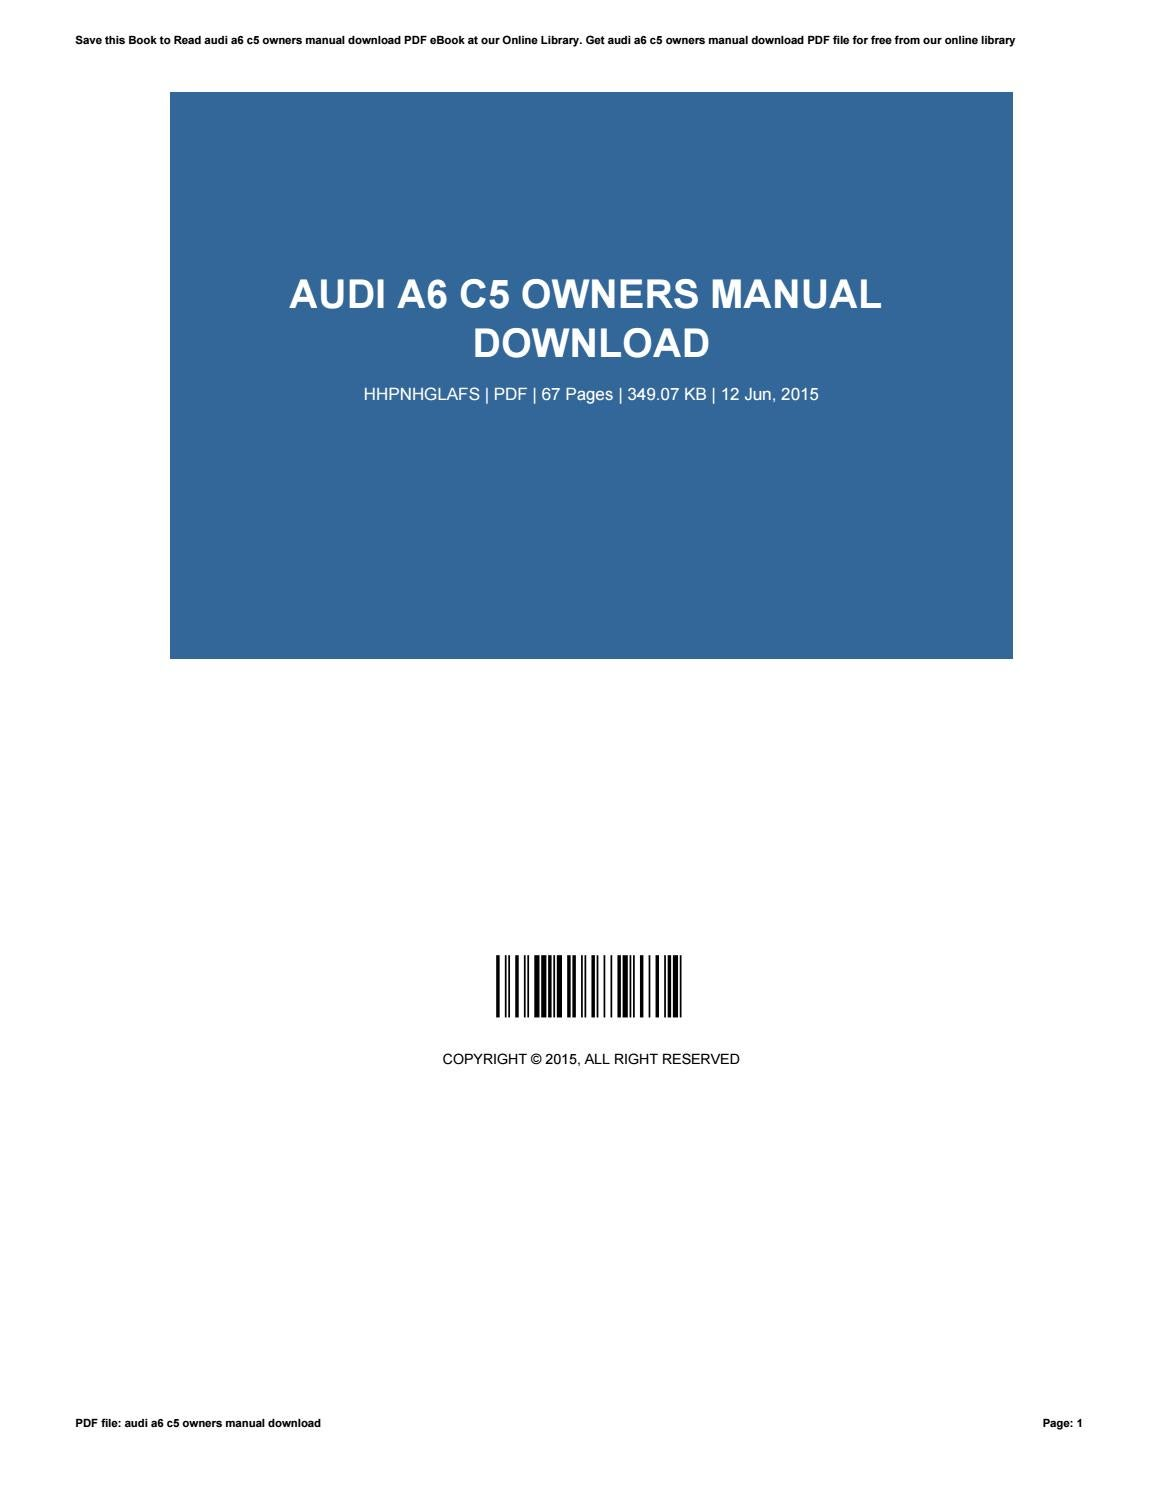 audi a6 c5 owners manual download by timothy issuu rh issuu com c5 owners workshop  manual c5 owners manual pdf